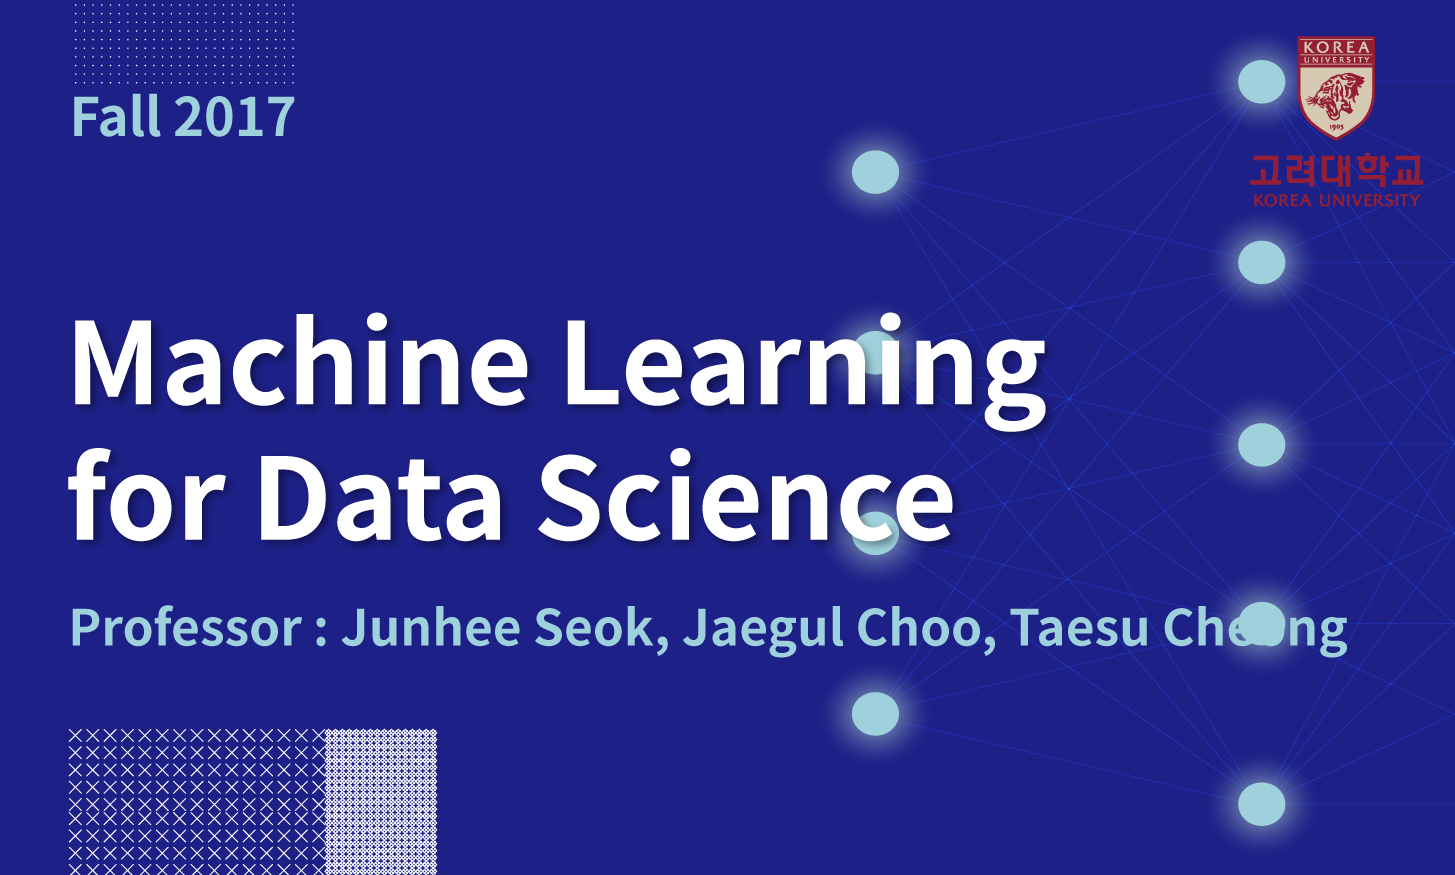 Machine Learning for Data Science 개강일 2018-09-03 종강일 2018-12-31 강좌상태 진행중